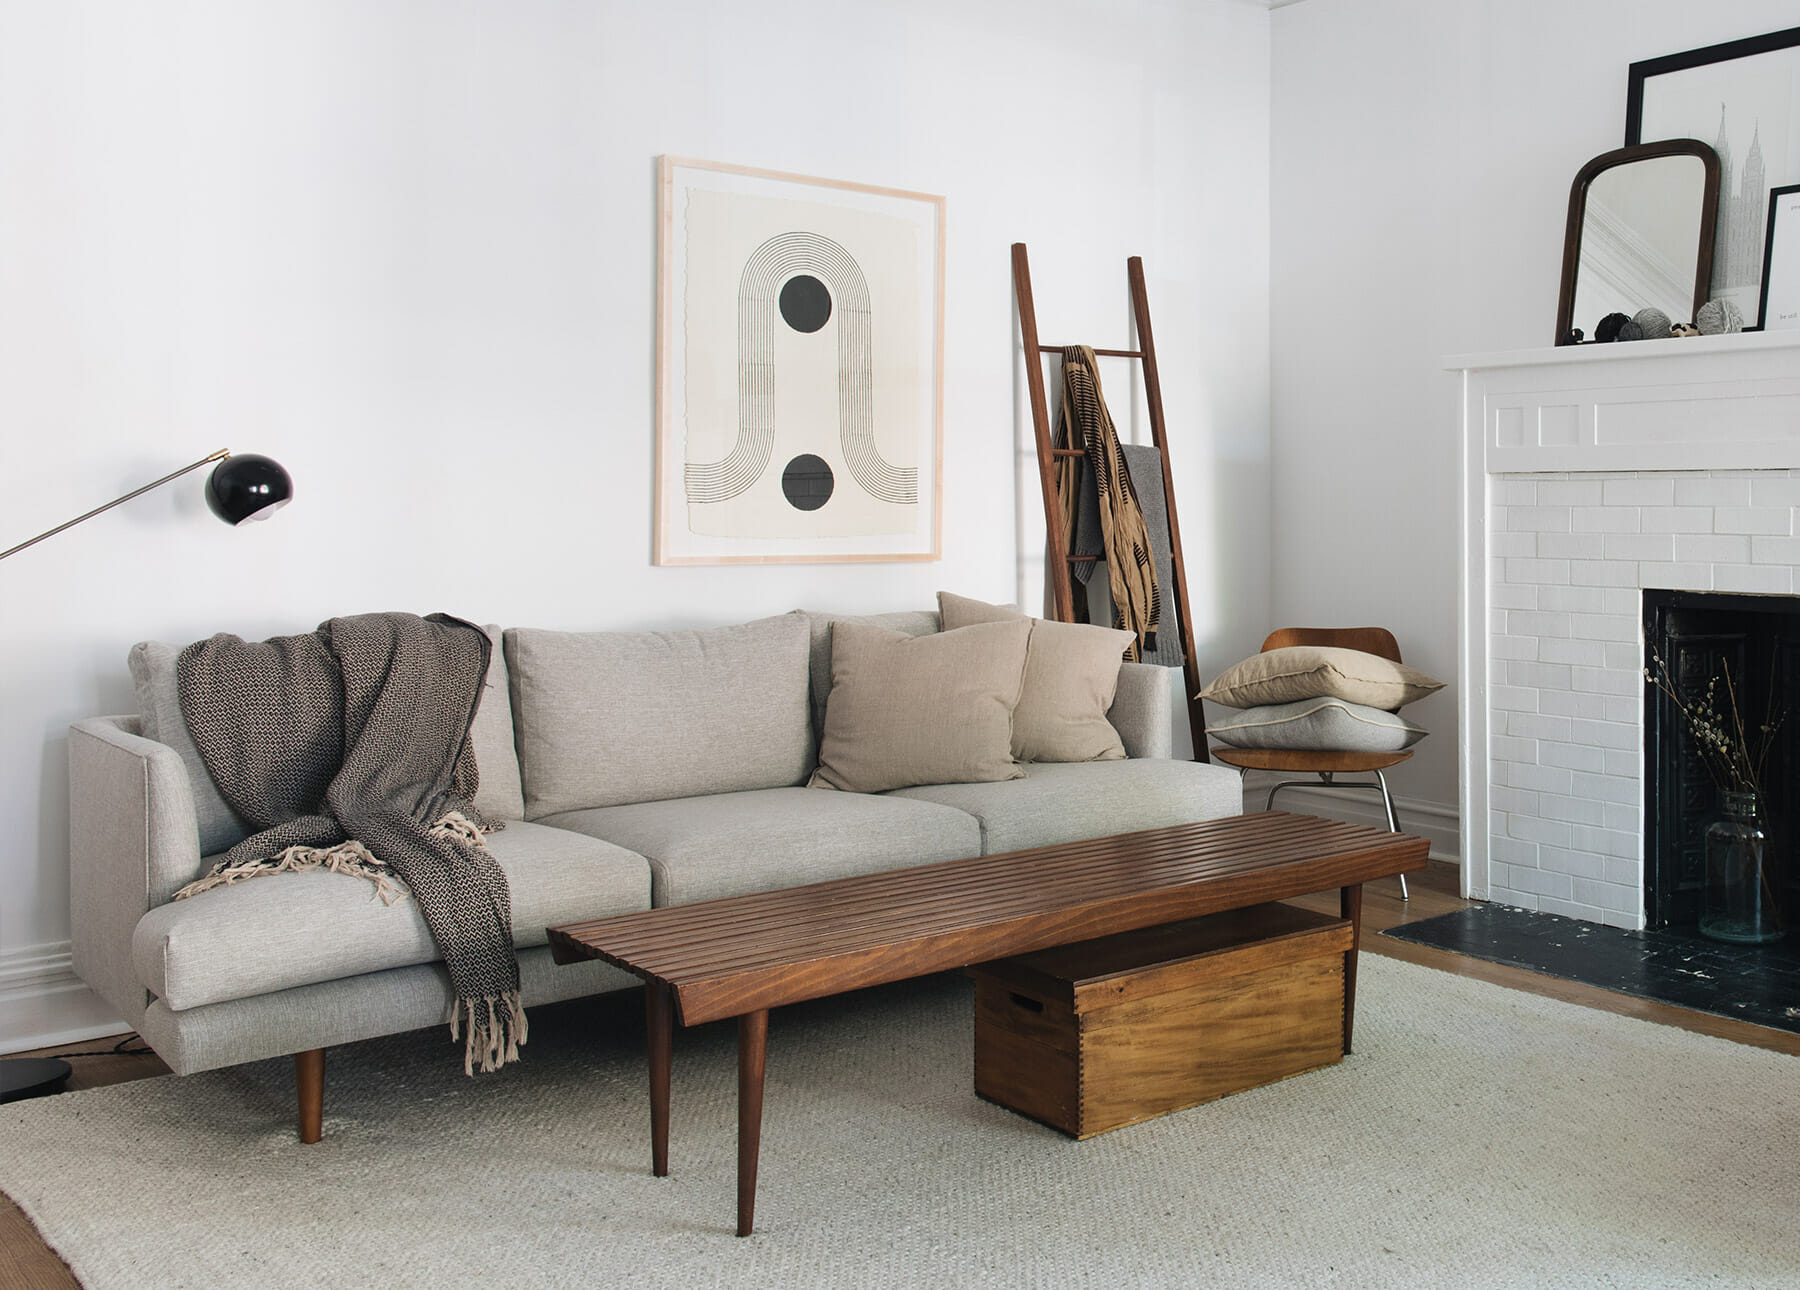 An Article minimalist sofa is in a living room with a piece of geometric art and a blanket ladder.